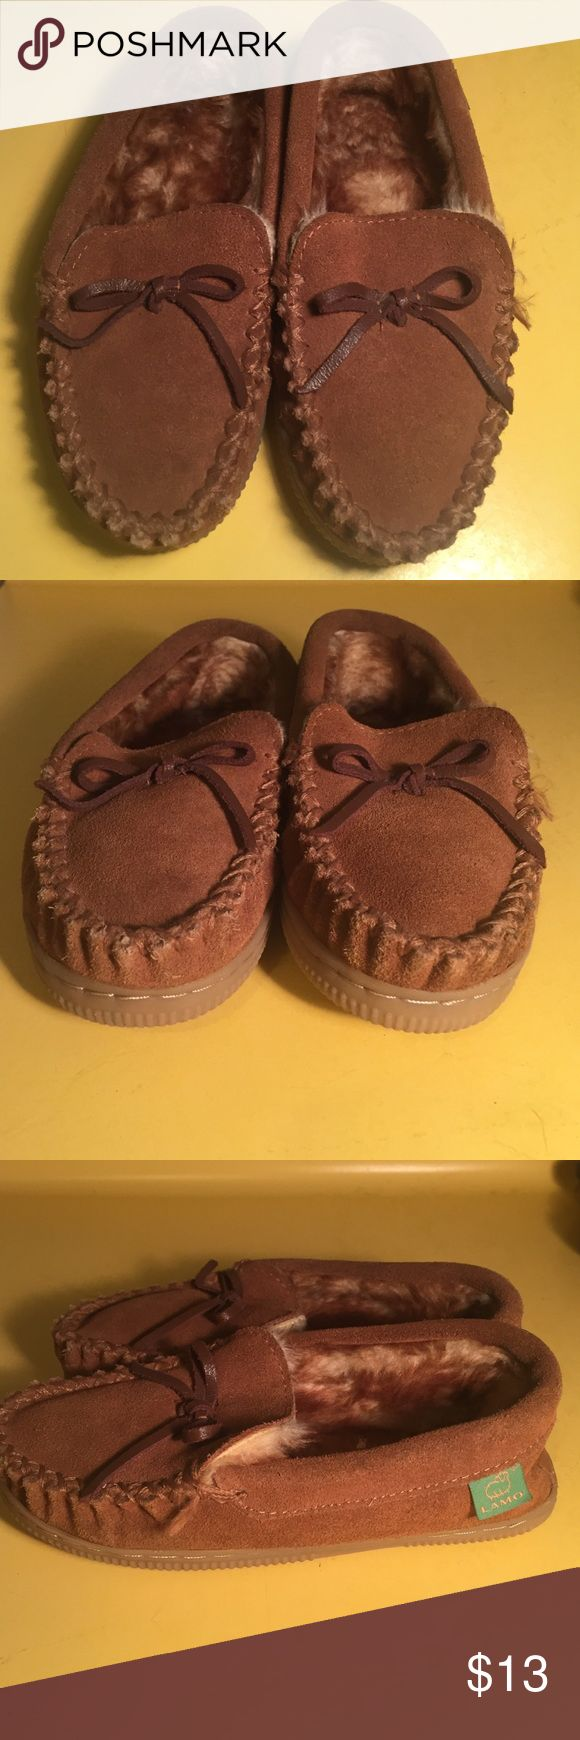 LAMO Moccasin sheepskin slippers youth 1 In excellent condition with very little wear! Bought for my son and he never really wore them maybe a couple times. Size 1 Lamo Shoes Moccasins